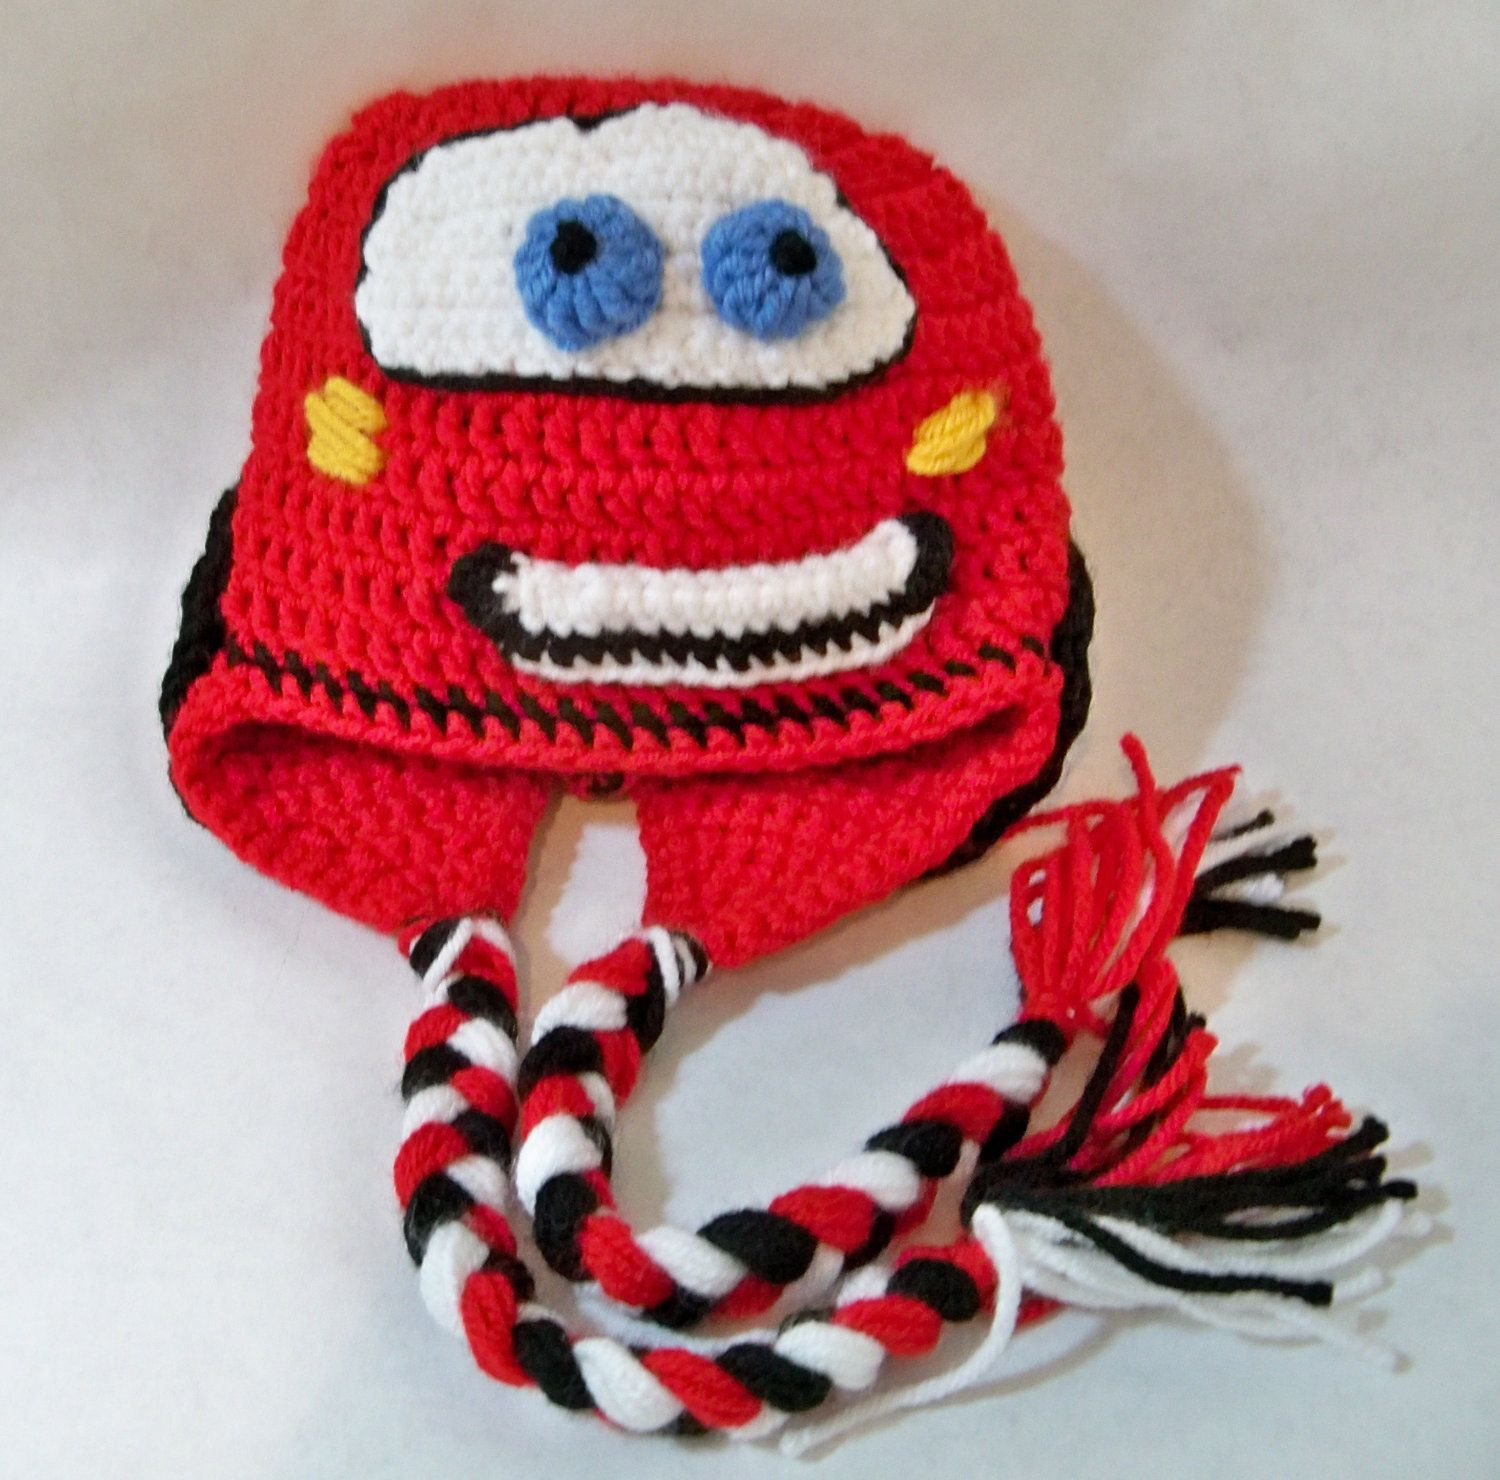 Crocheted Lightning Mcqueen Beanie from CARS by longklee on Etsy ...